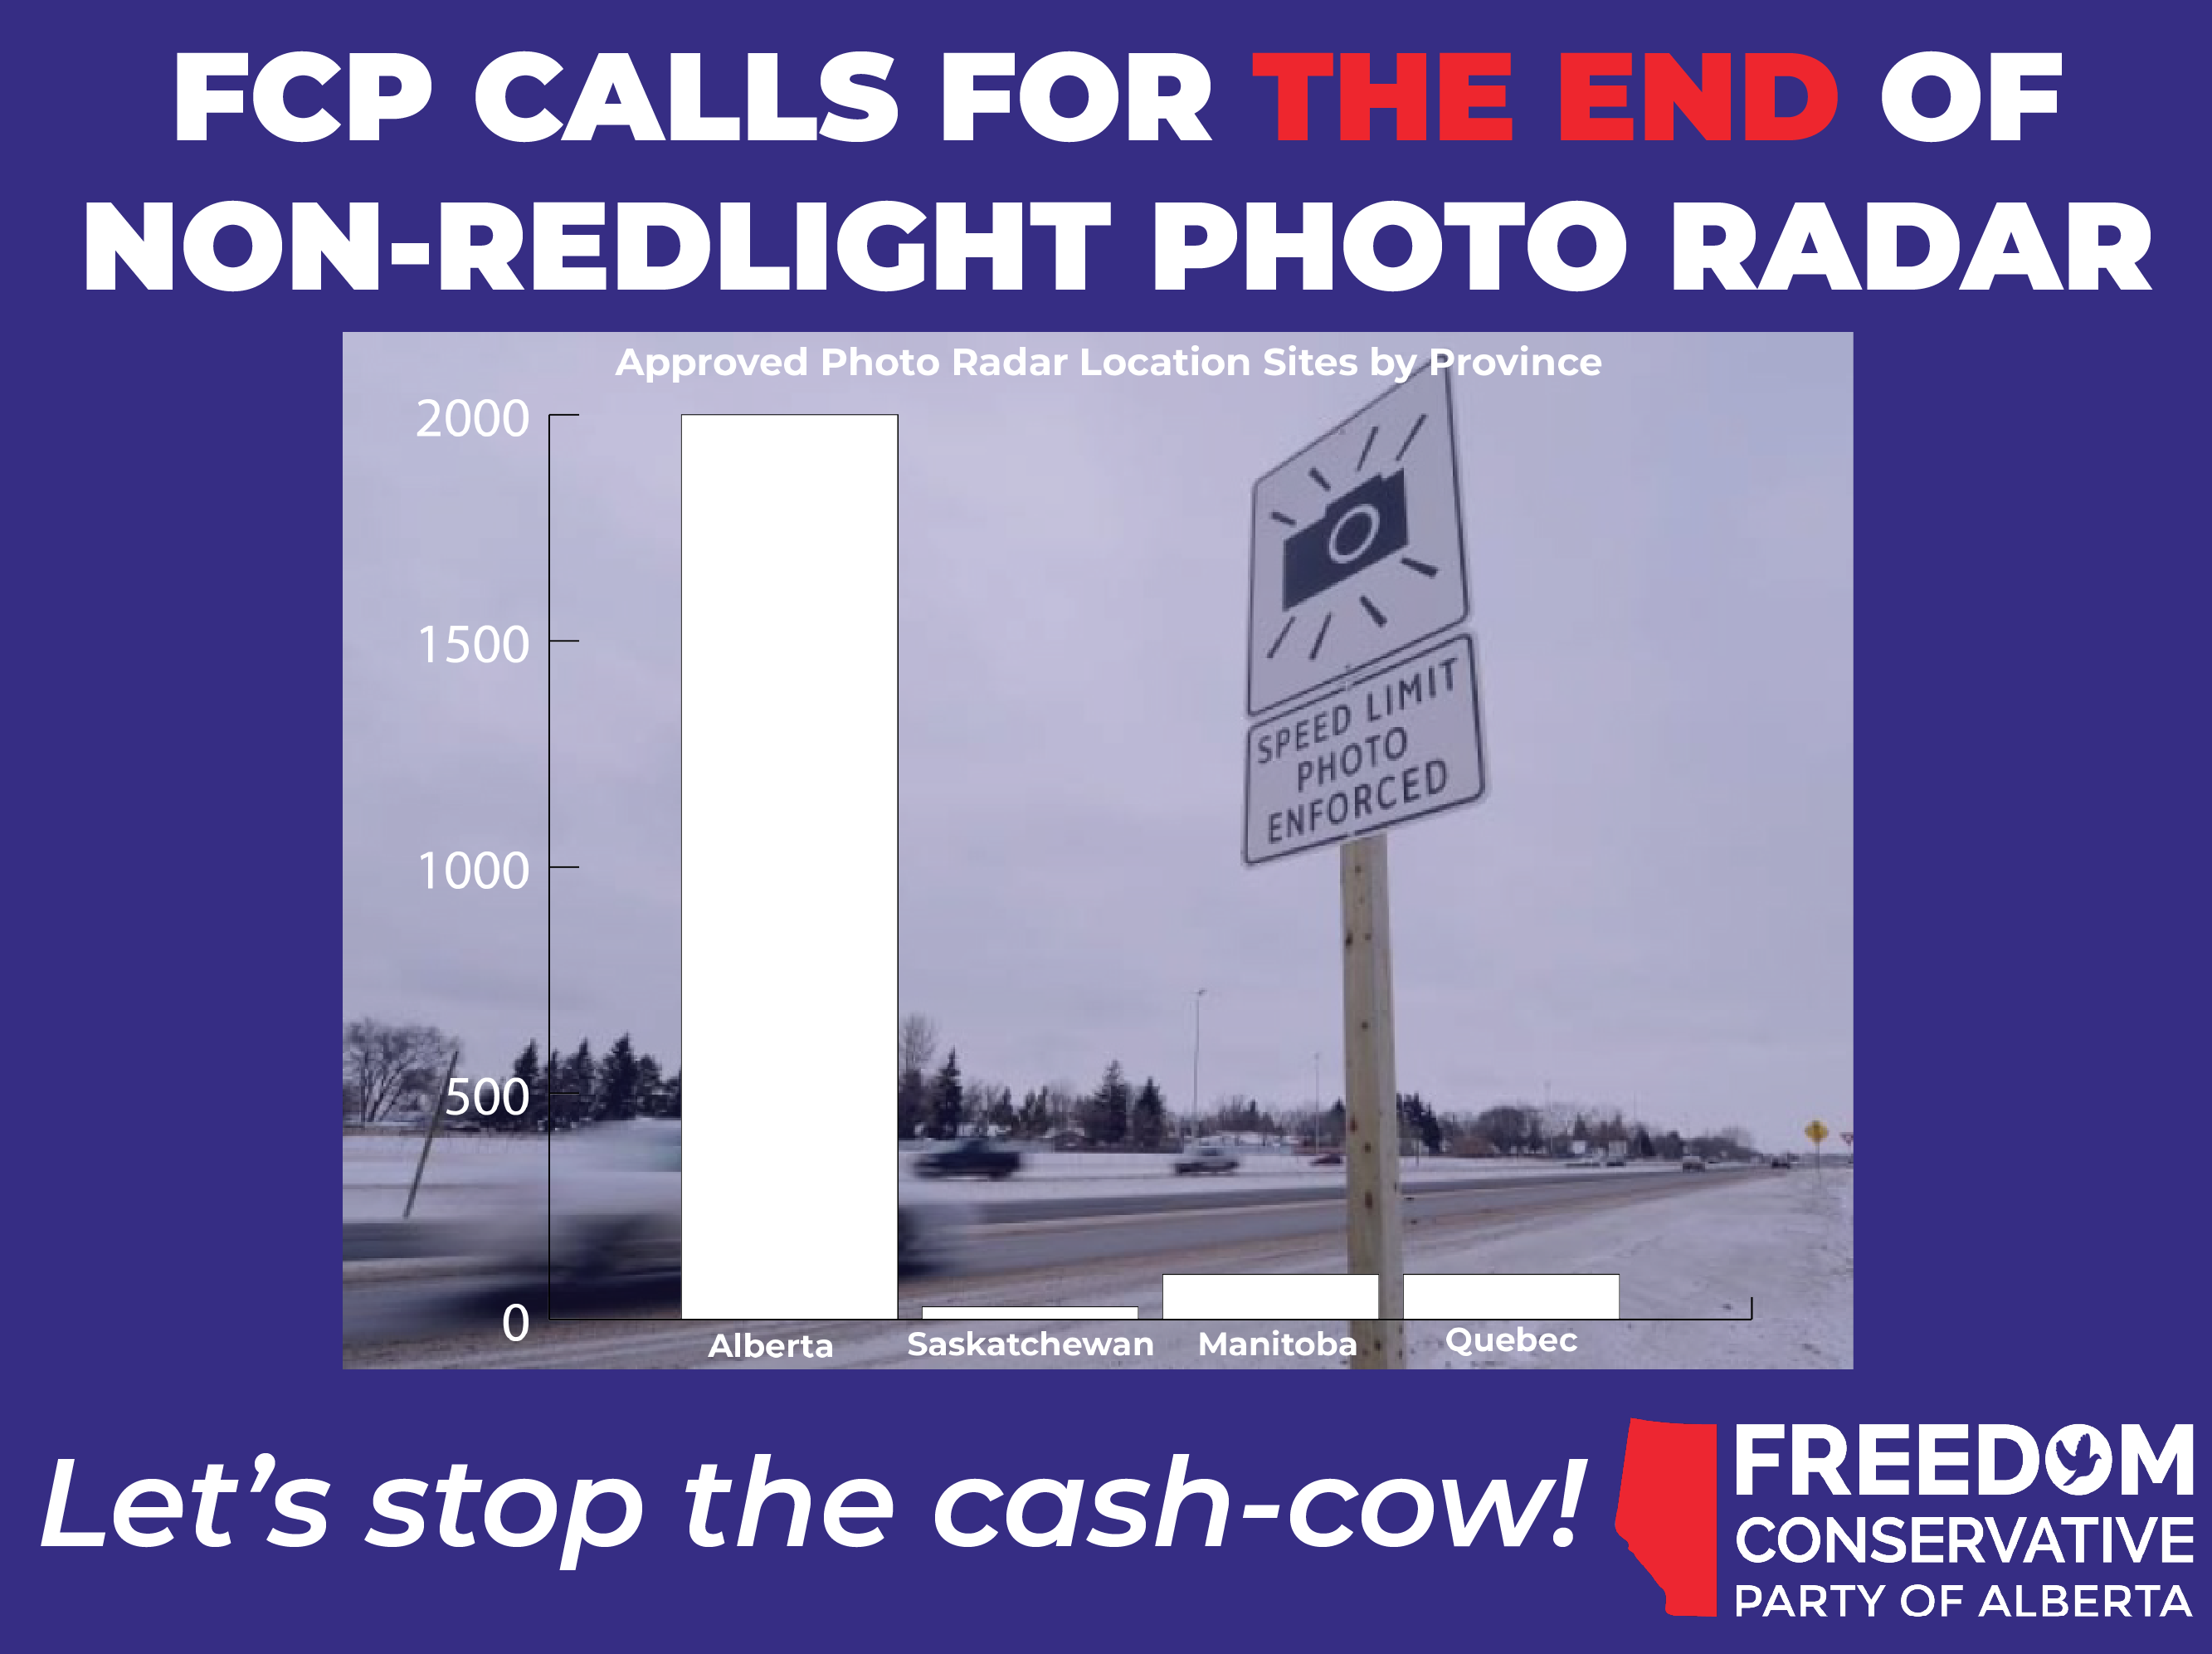 RELEASE: FCP Calls for End of Photo Radar